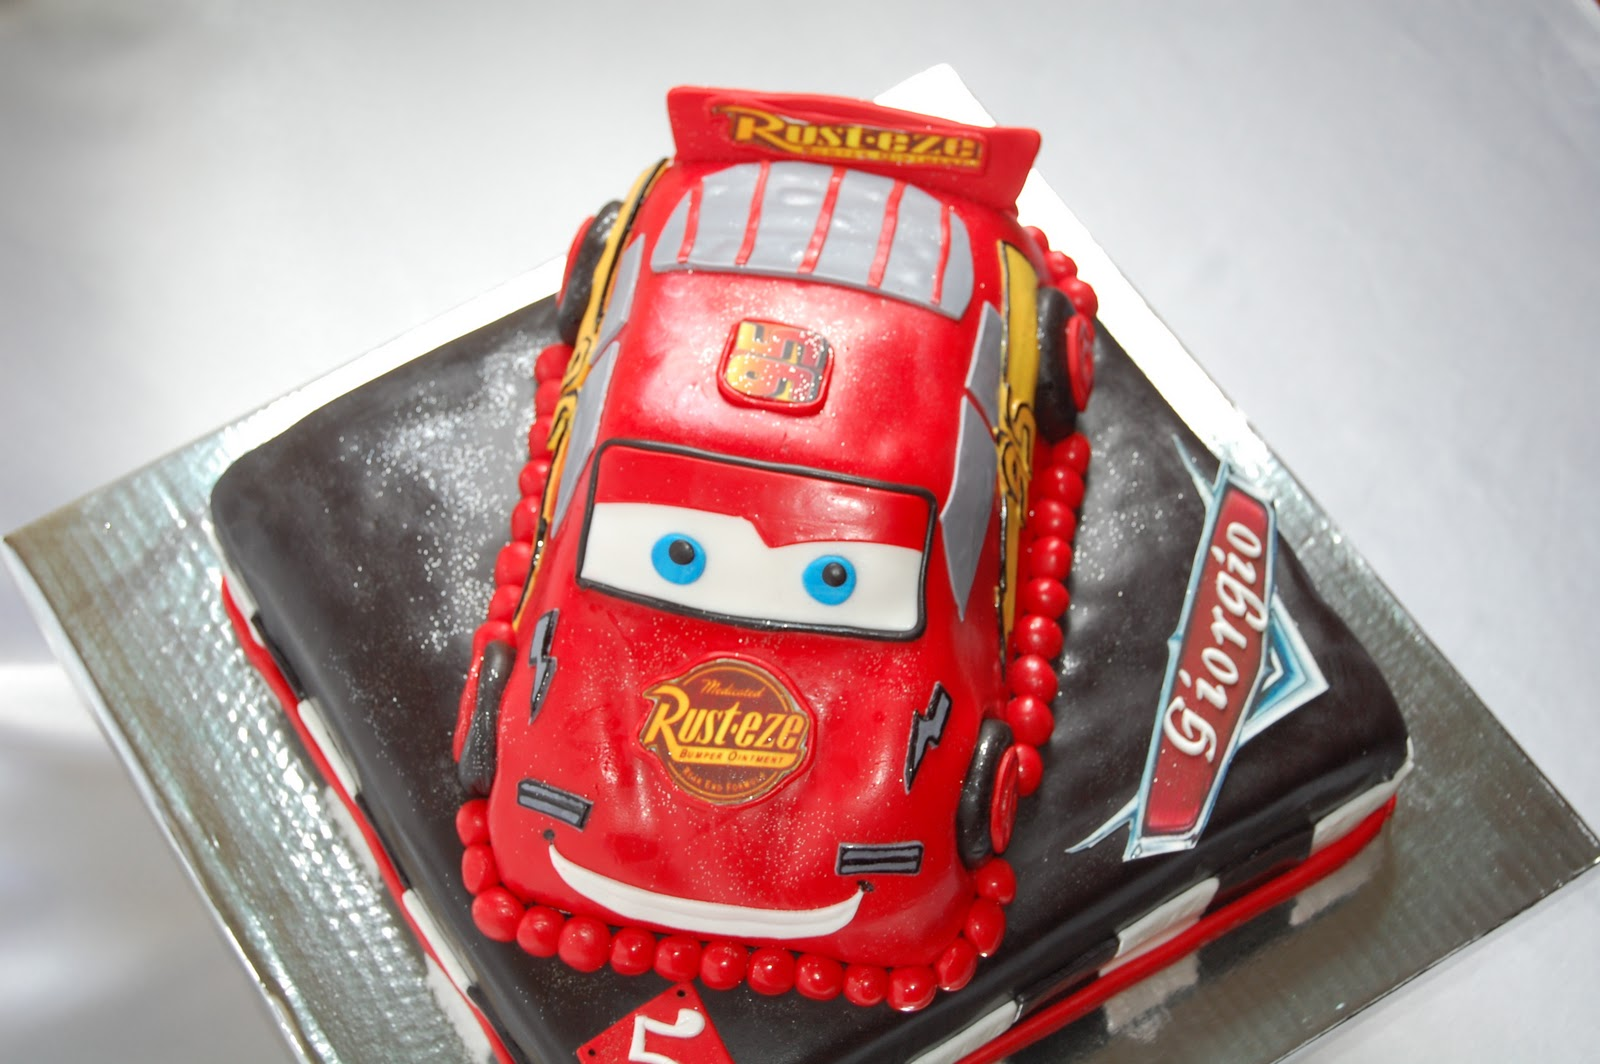 CUSTOMISED CAKES BY JEN Disney Pixar Cars Cake